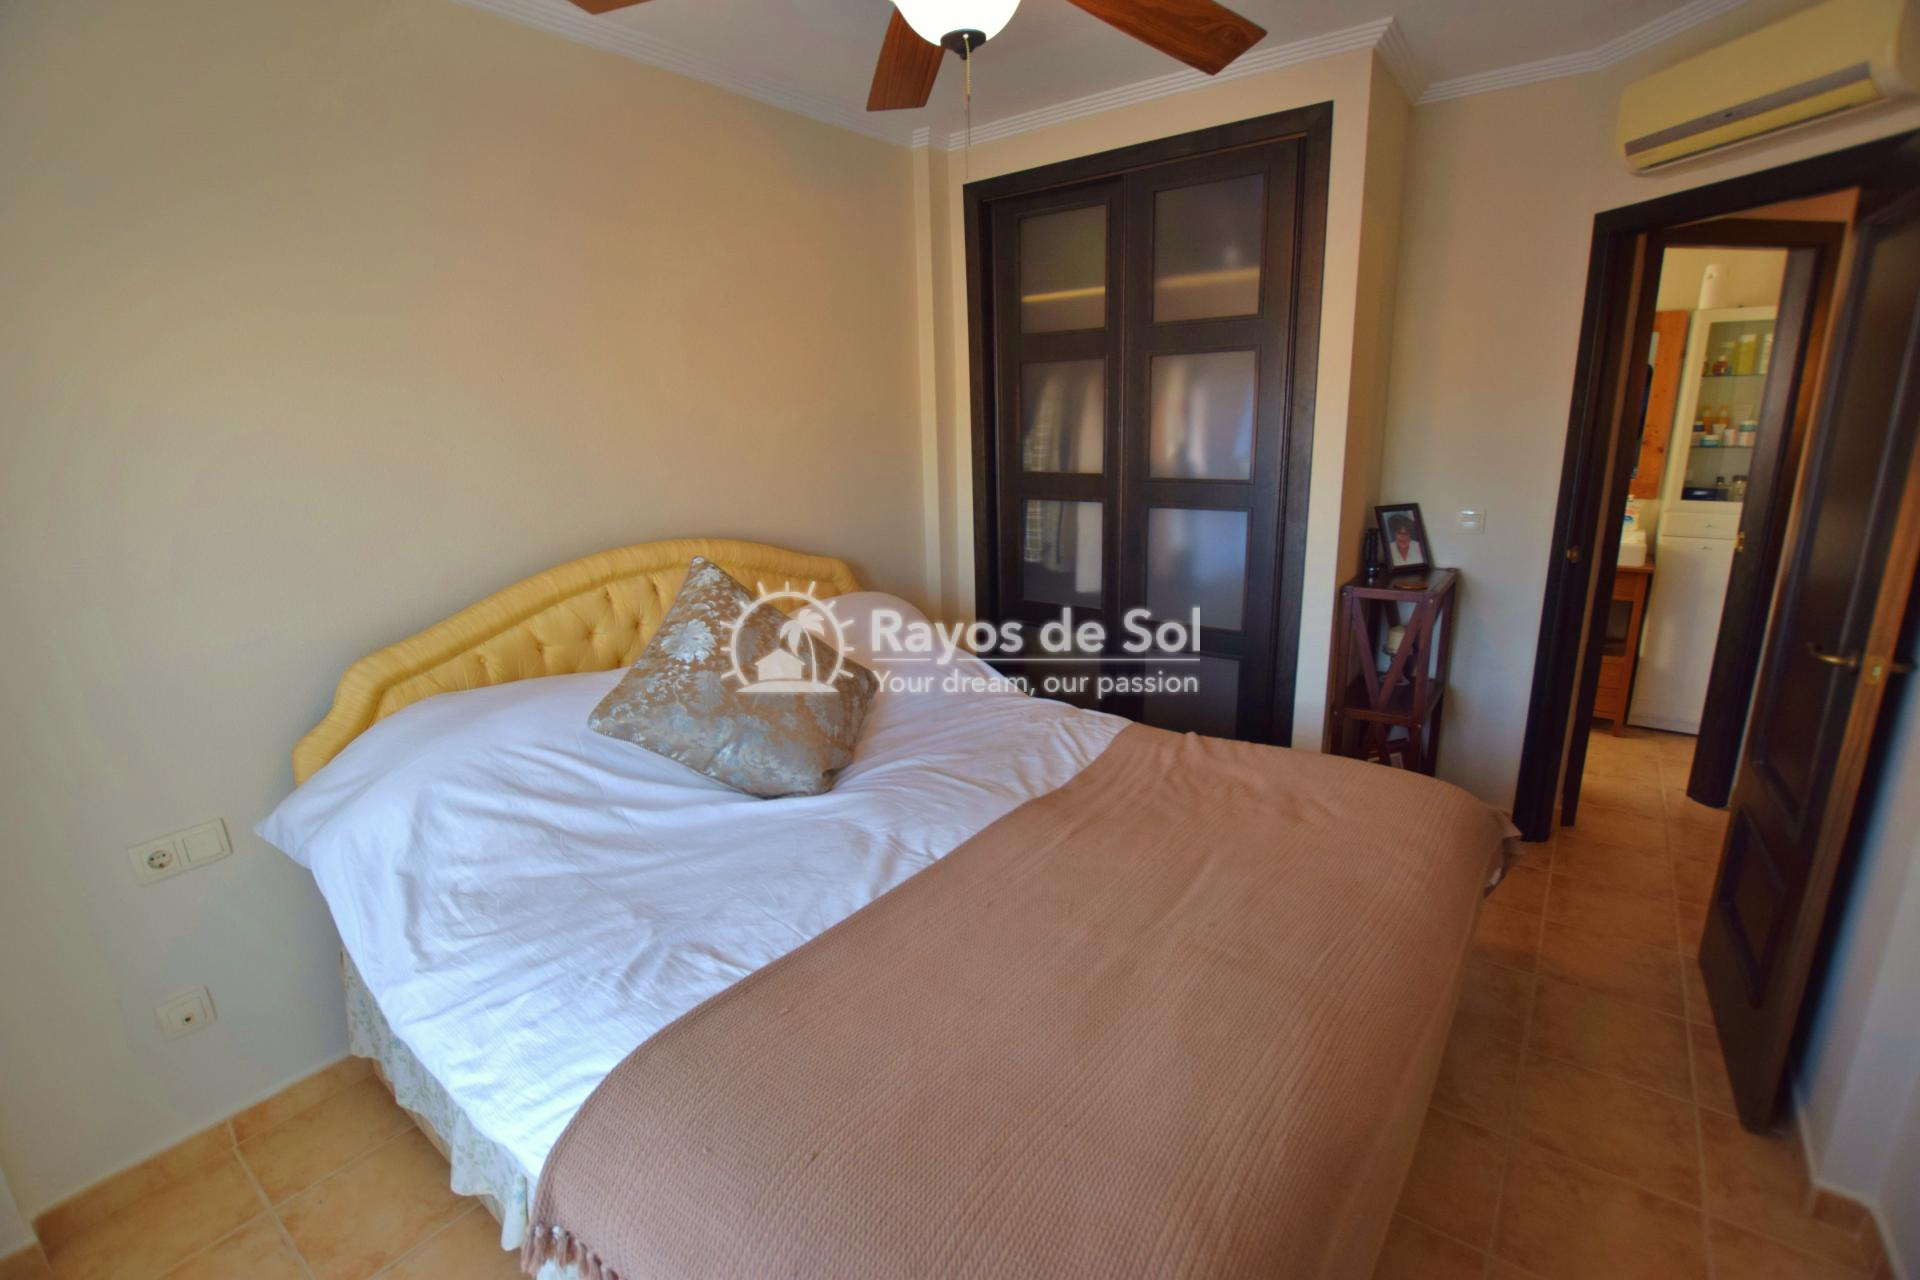 Townhouse  in San Cayetano, Costa Cálida (SCRE0026) - 12